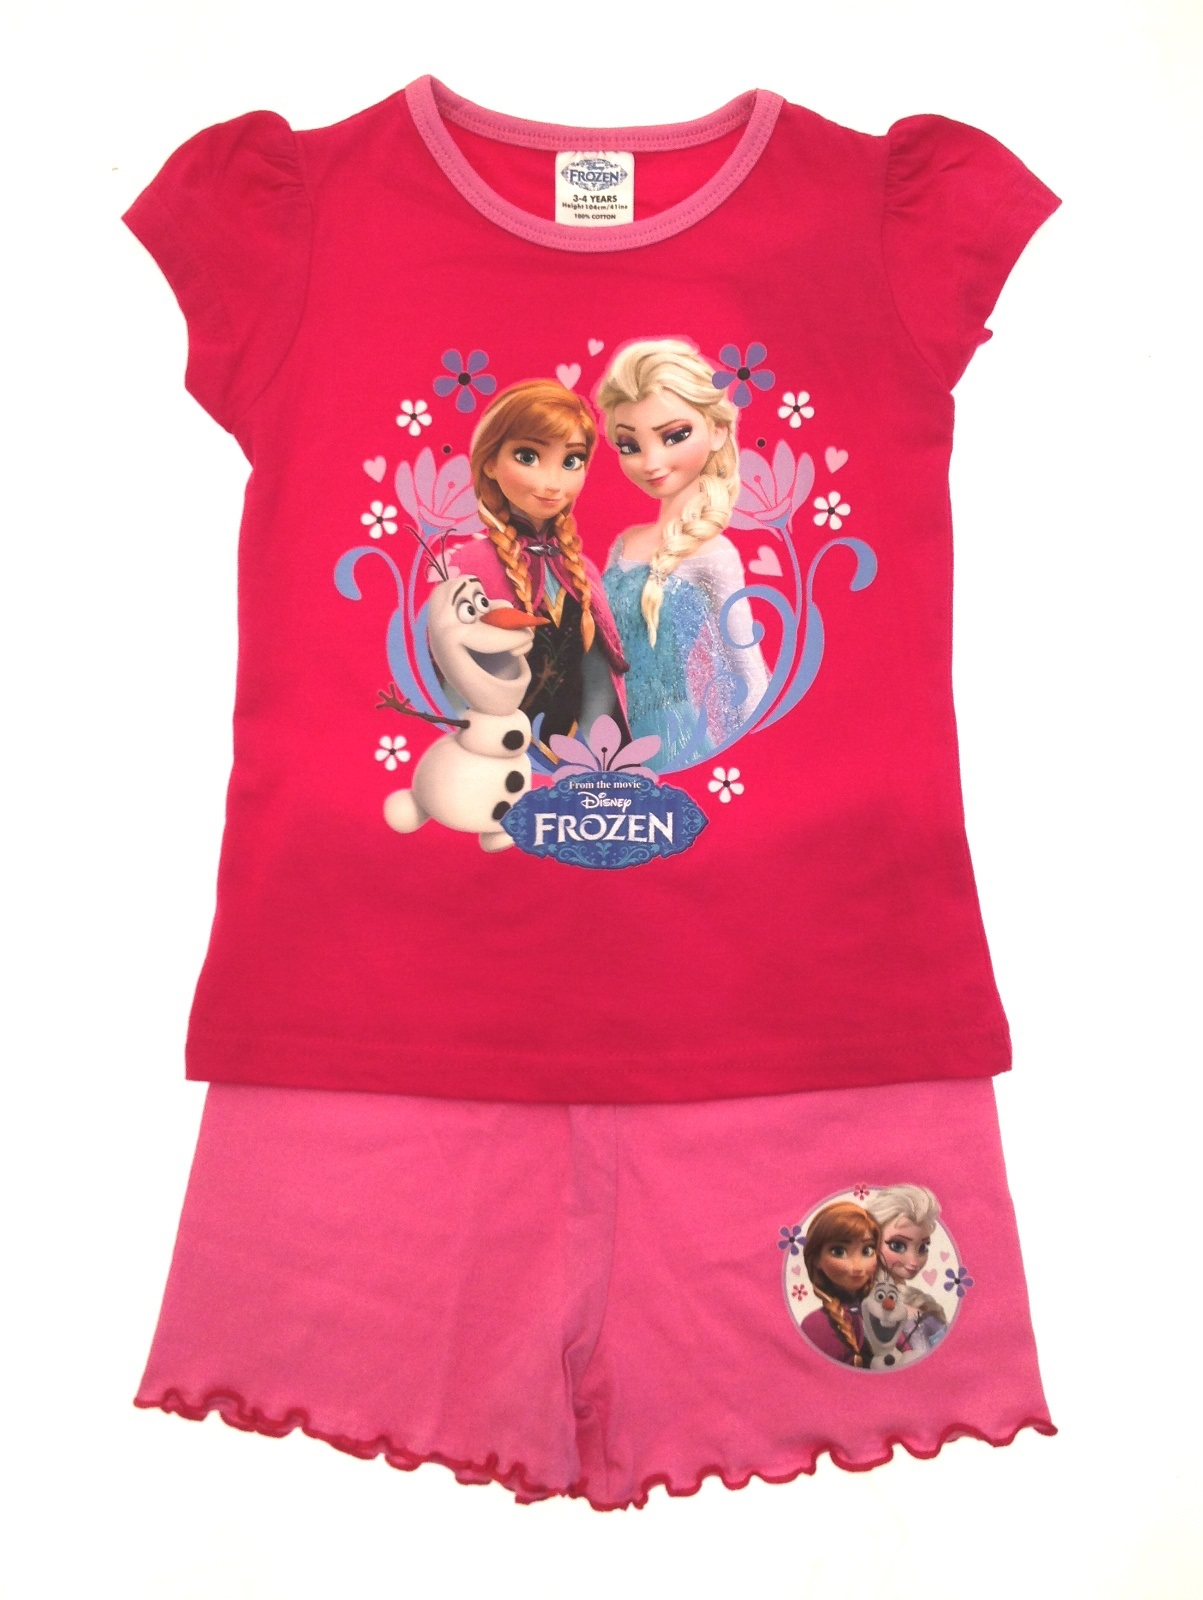 Kids' Disney Pajamas, Sleepwear and Robes at Macy's come in a variety of styles and sizes. Shop Kids' Disney Pajamas, Kids' Sleepwear and Kids' Robes at Macy's and find the latest styles today. Free Shipping Available.